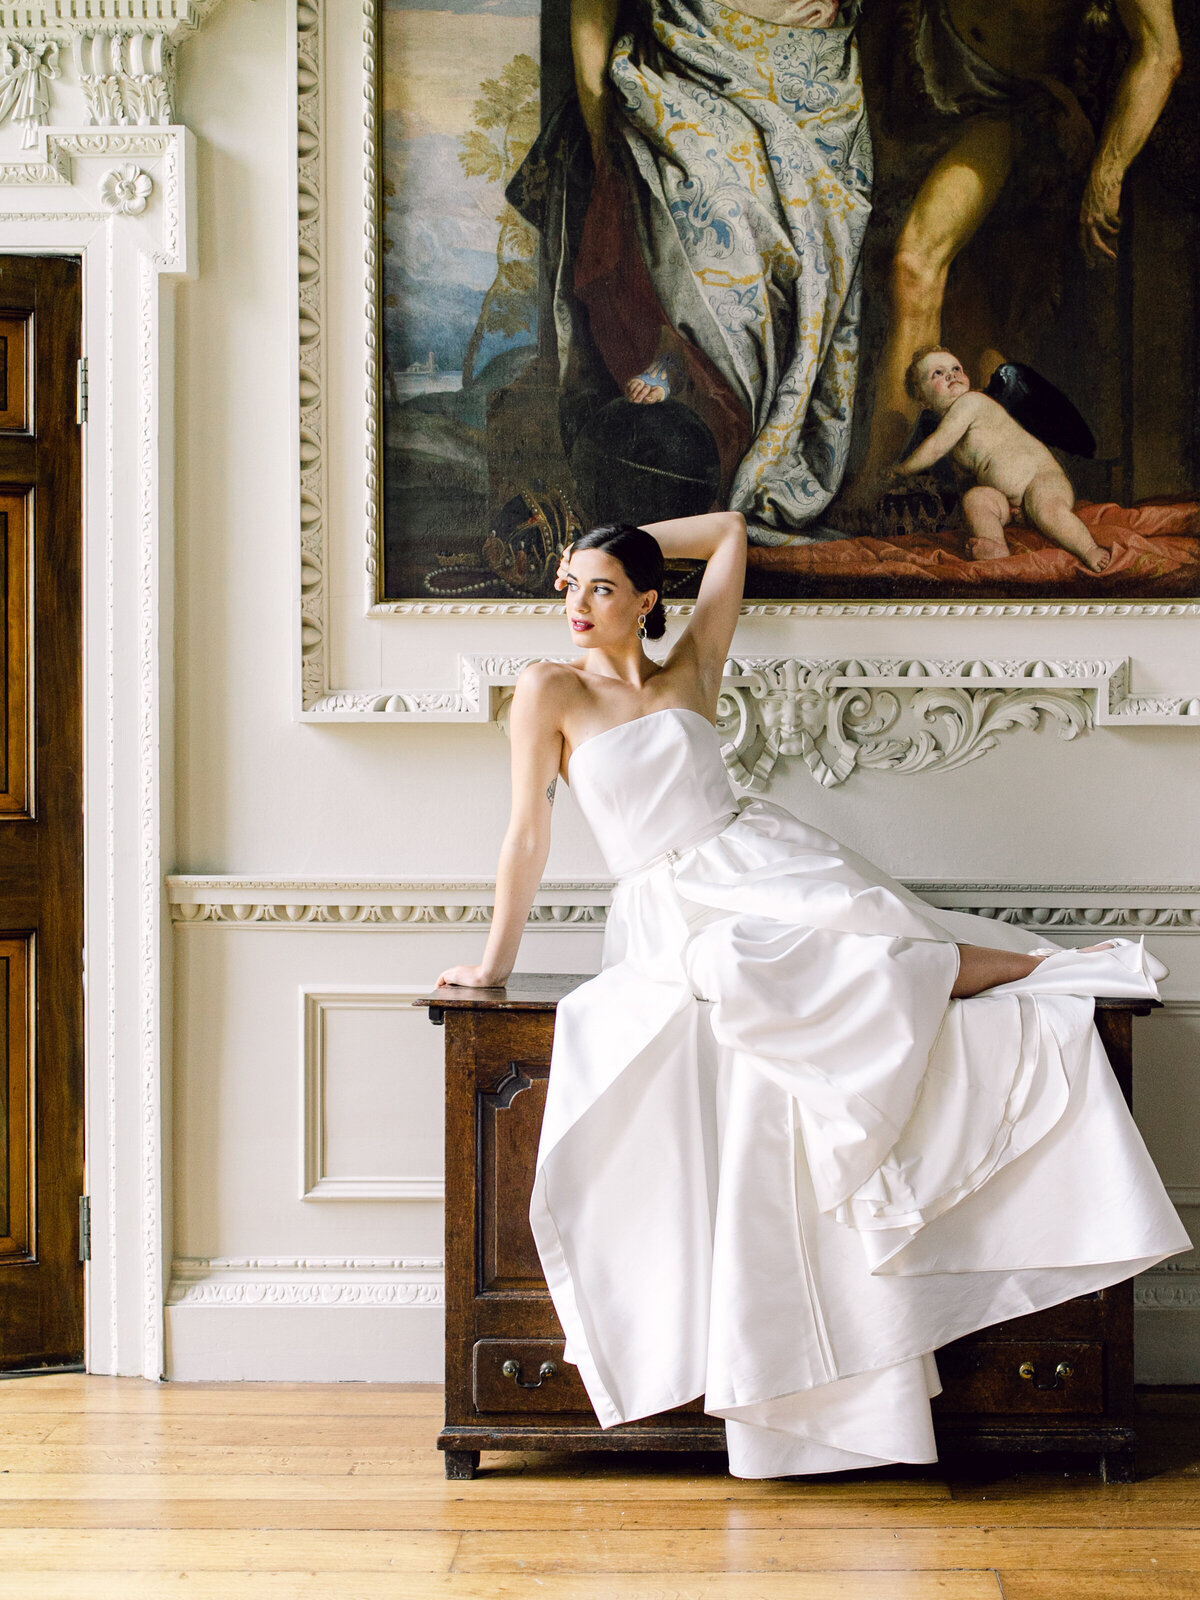 The Stars Inside - Hawkstone Hall Elopement (59)